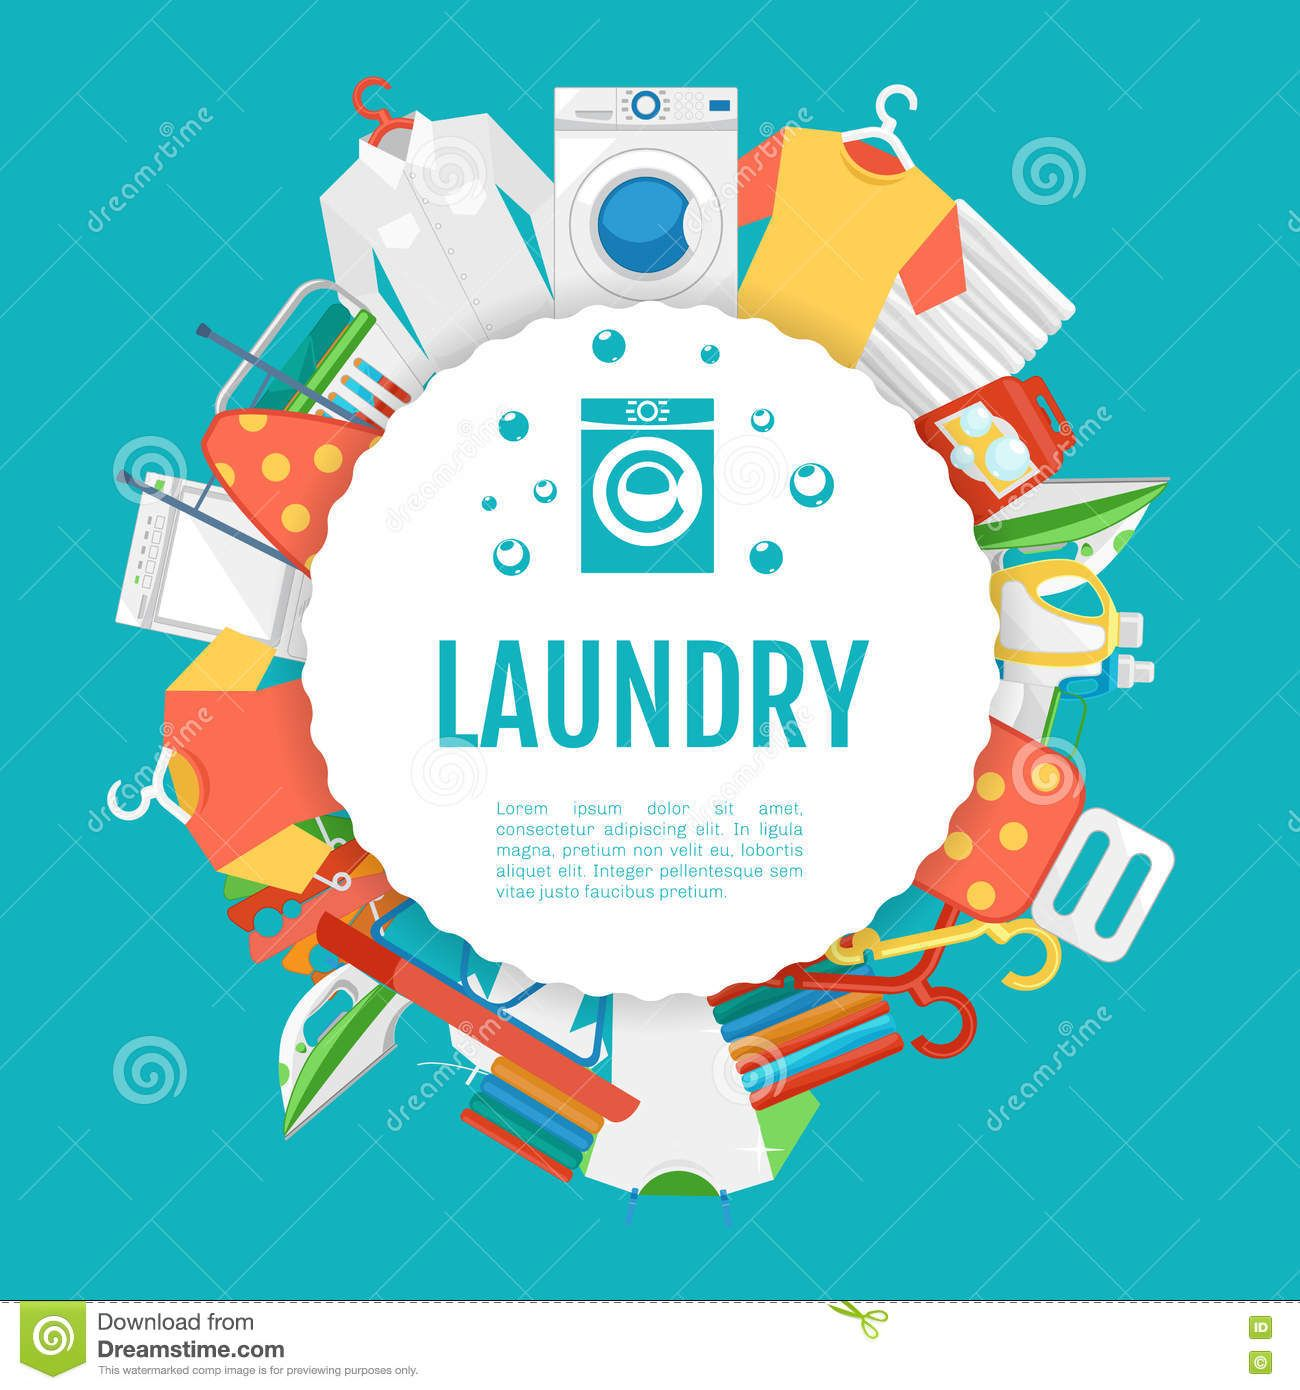 Laundry Service Poster Design. Icons Circle Label With